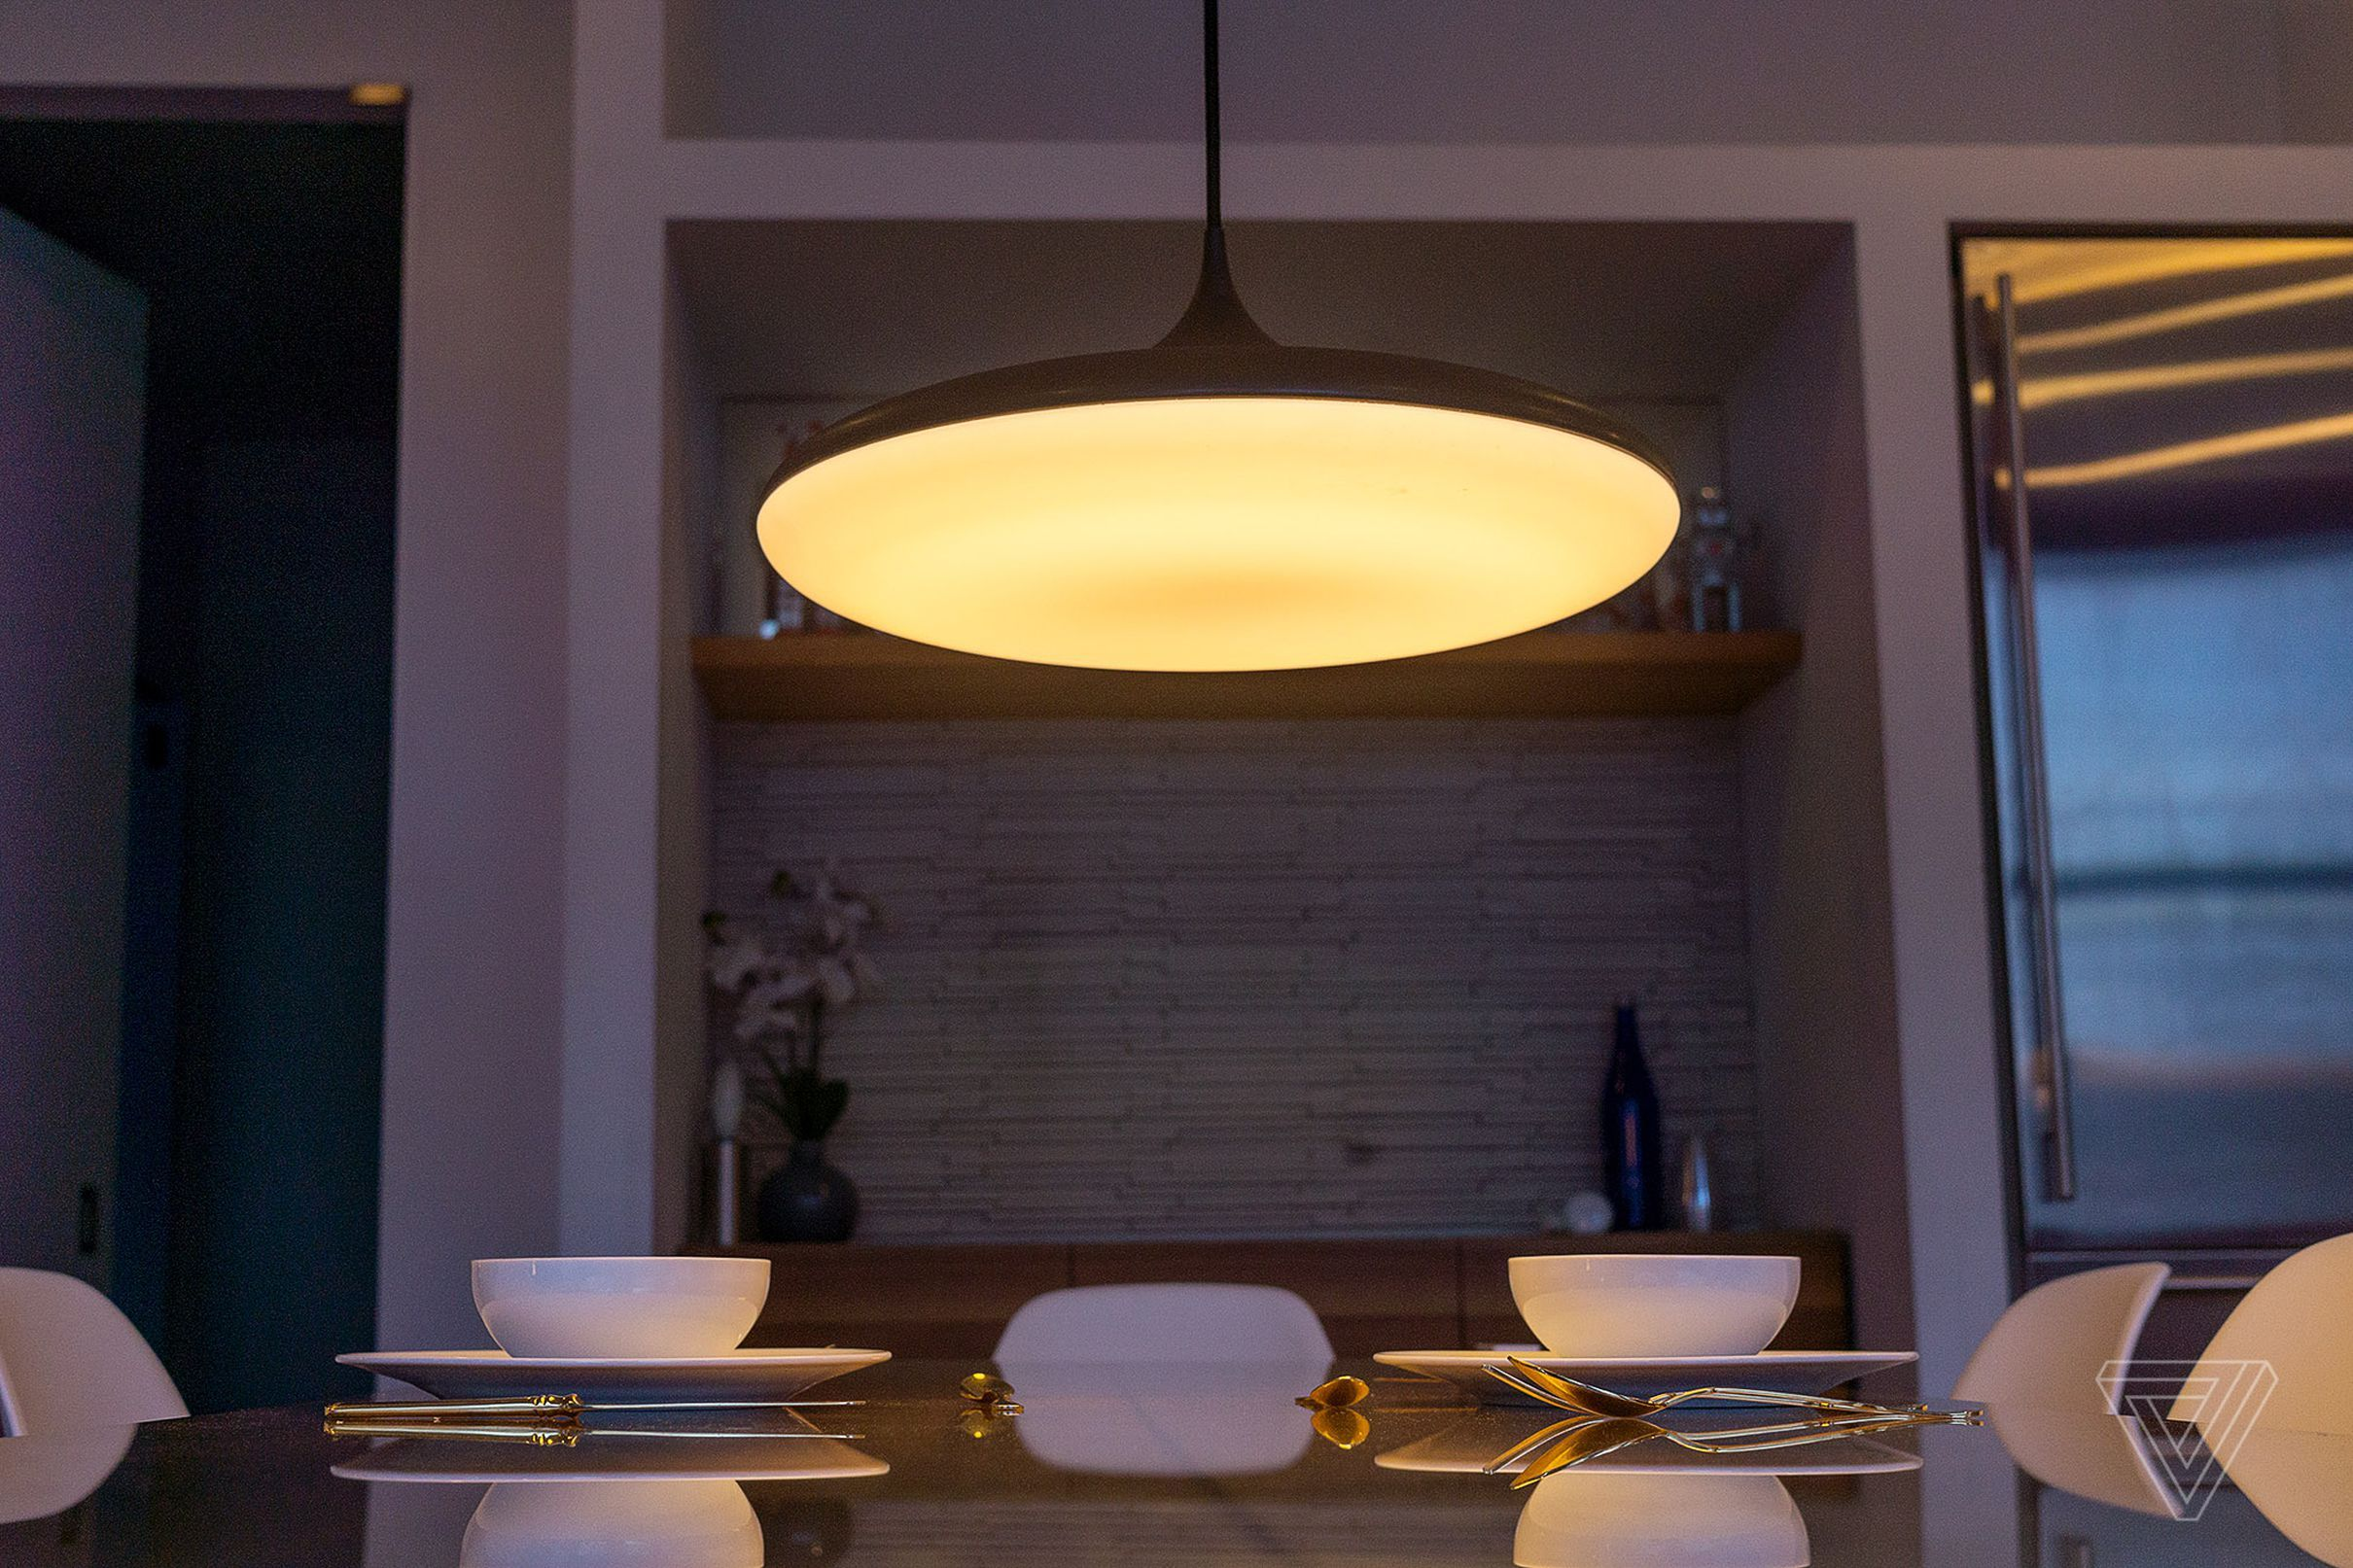 The White Ambiance Cher Suspension Costs 229 99philips Is